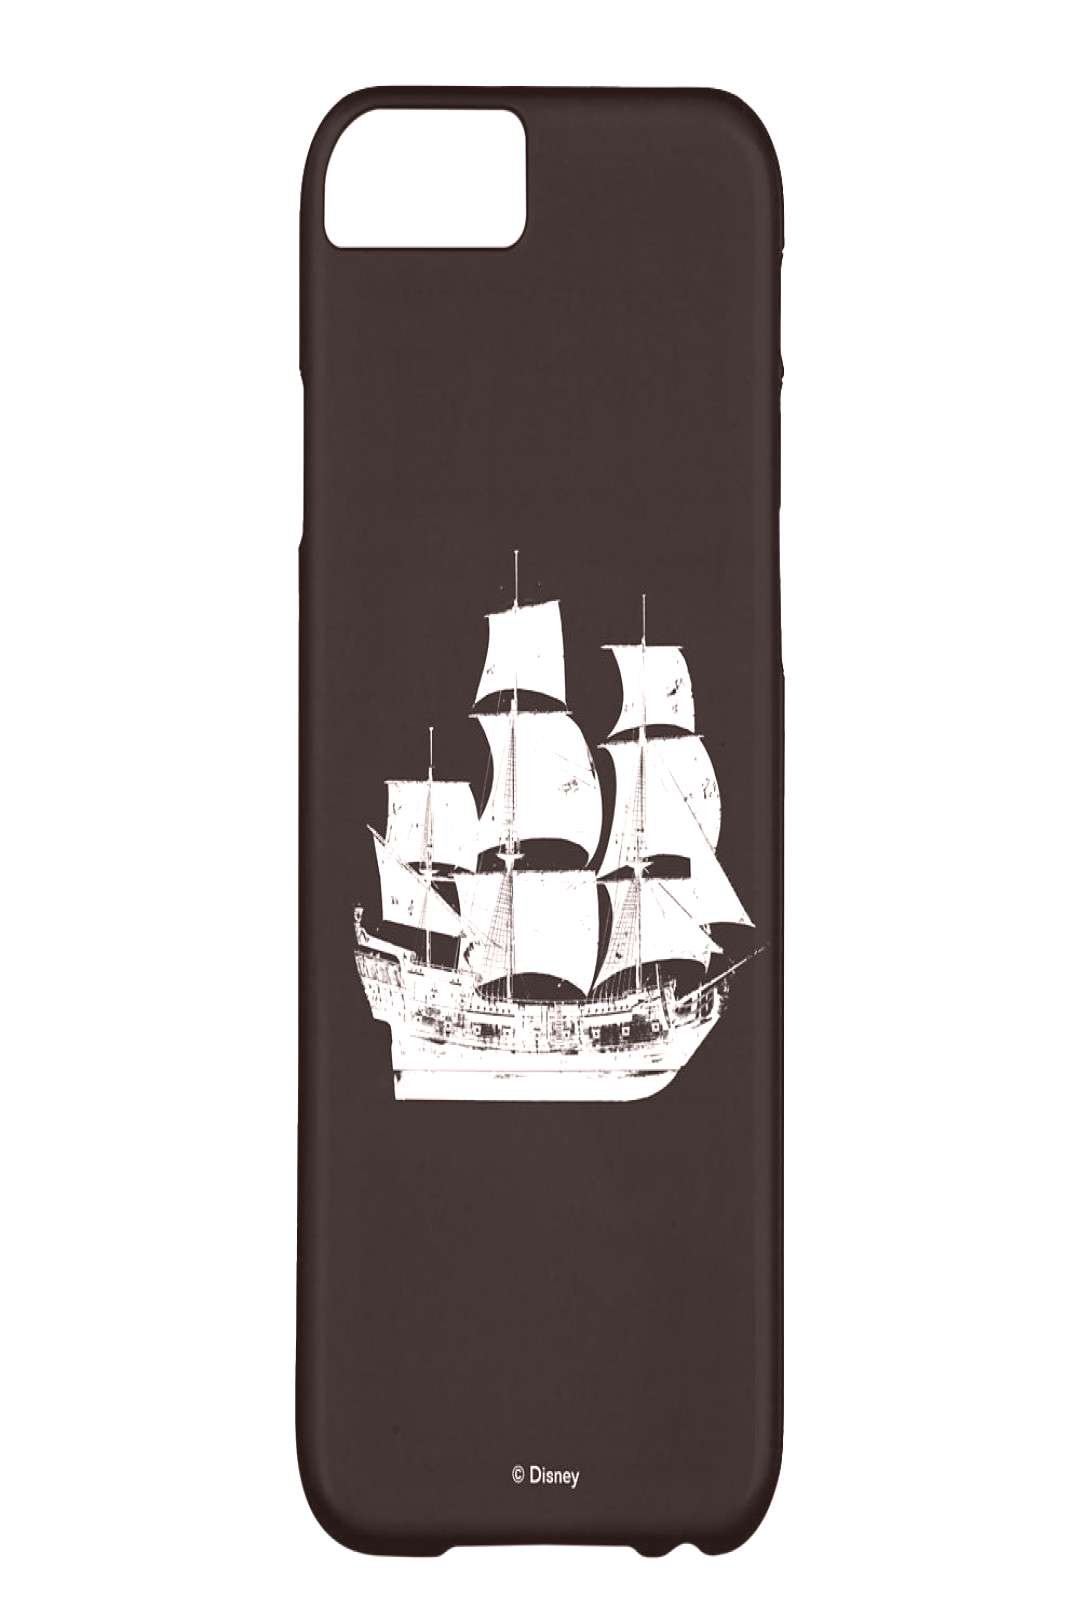 Pirates of the Caribbean Dead Men Tell No Tales The Sea Rules iPhone 6/6s iPhone Case - Custom